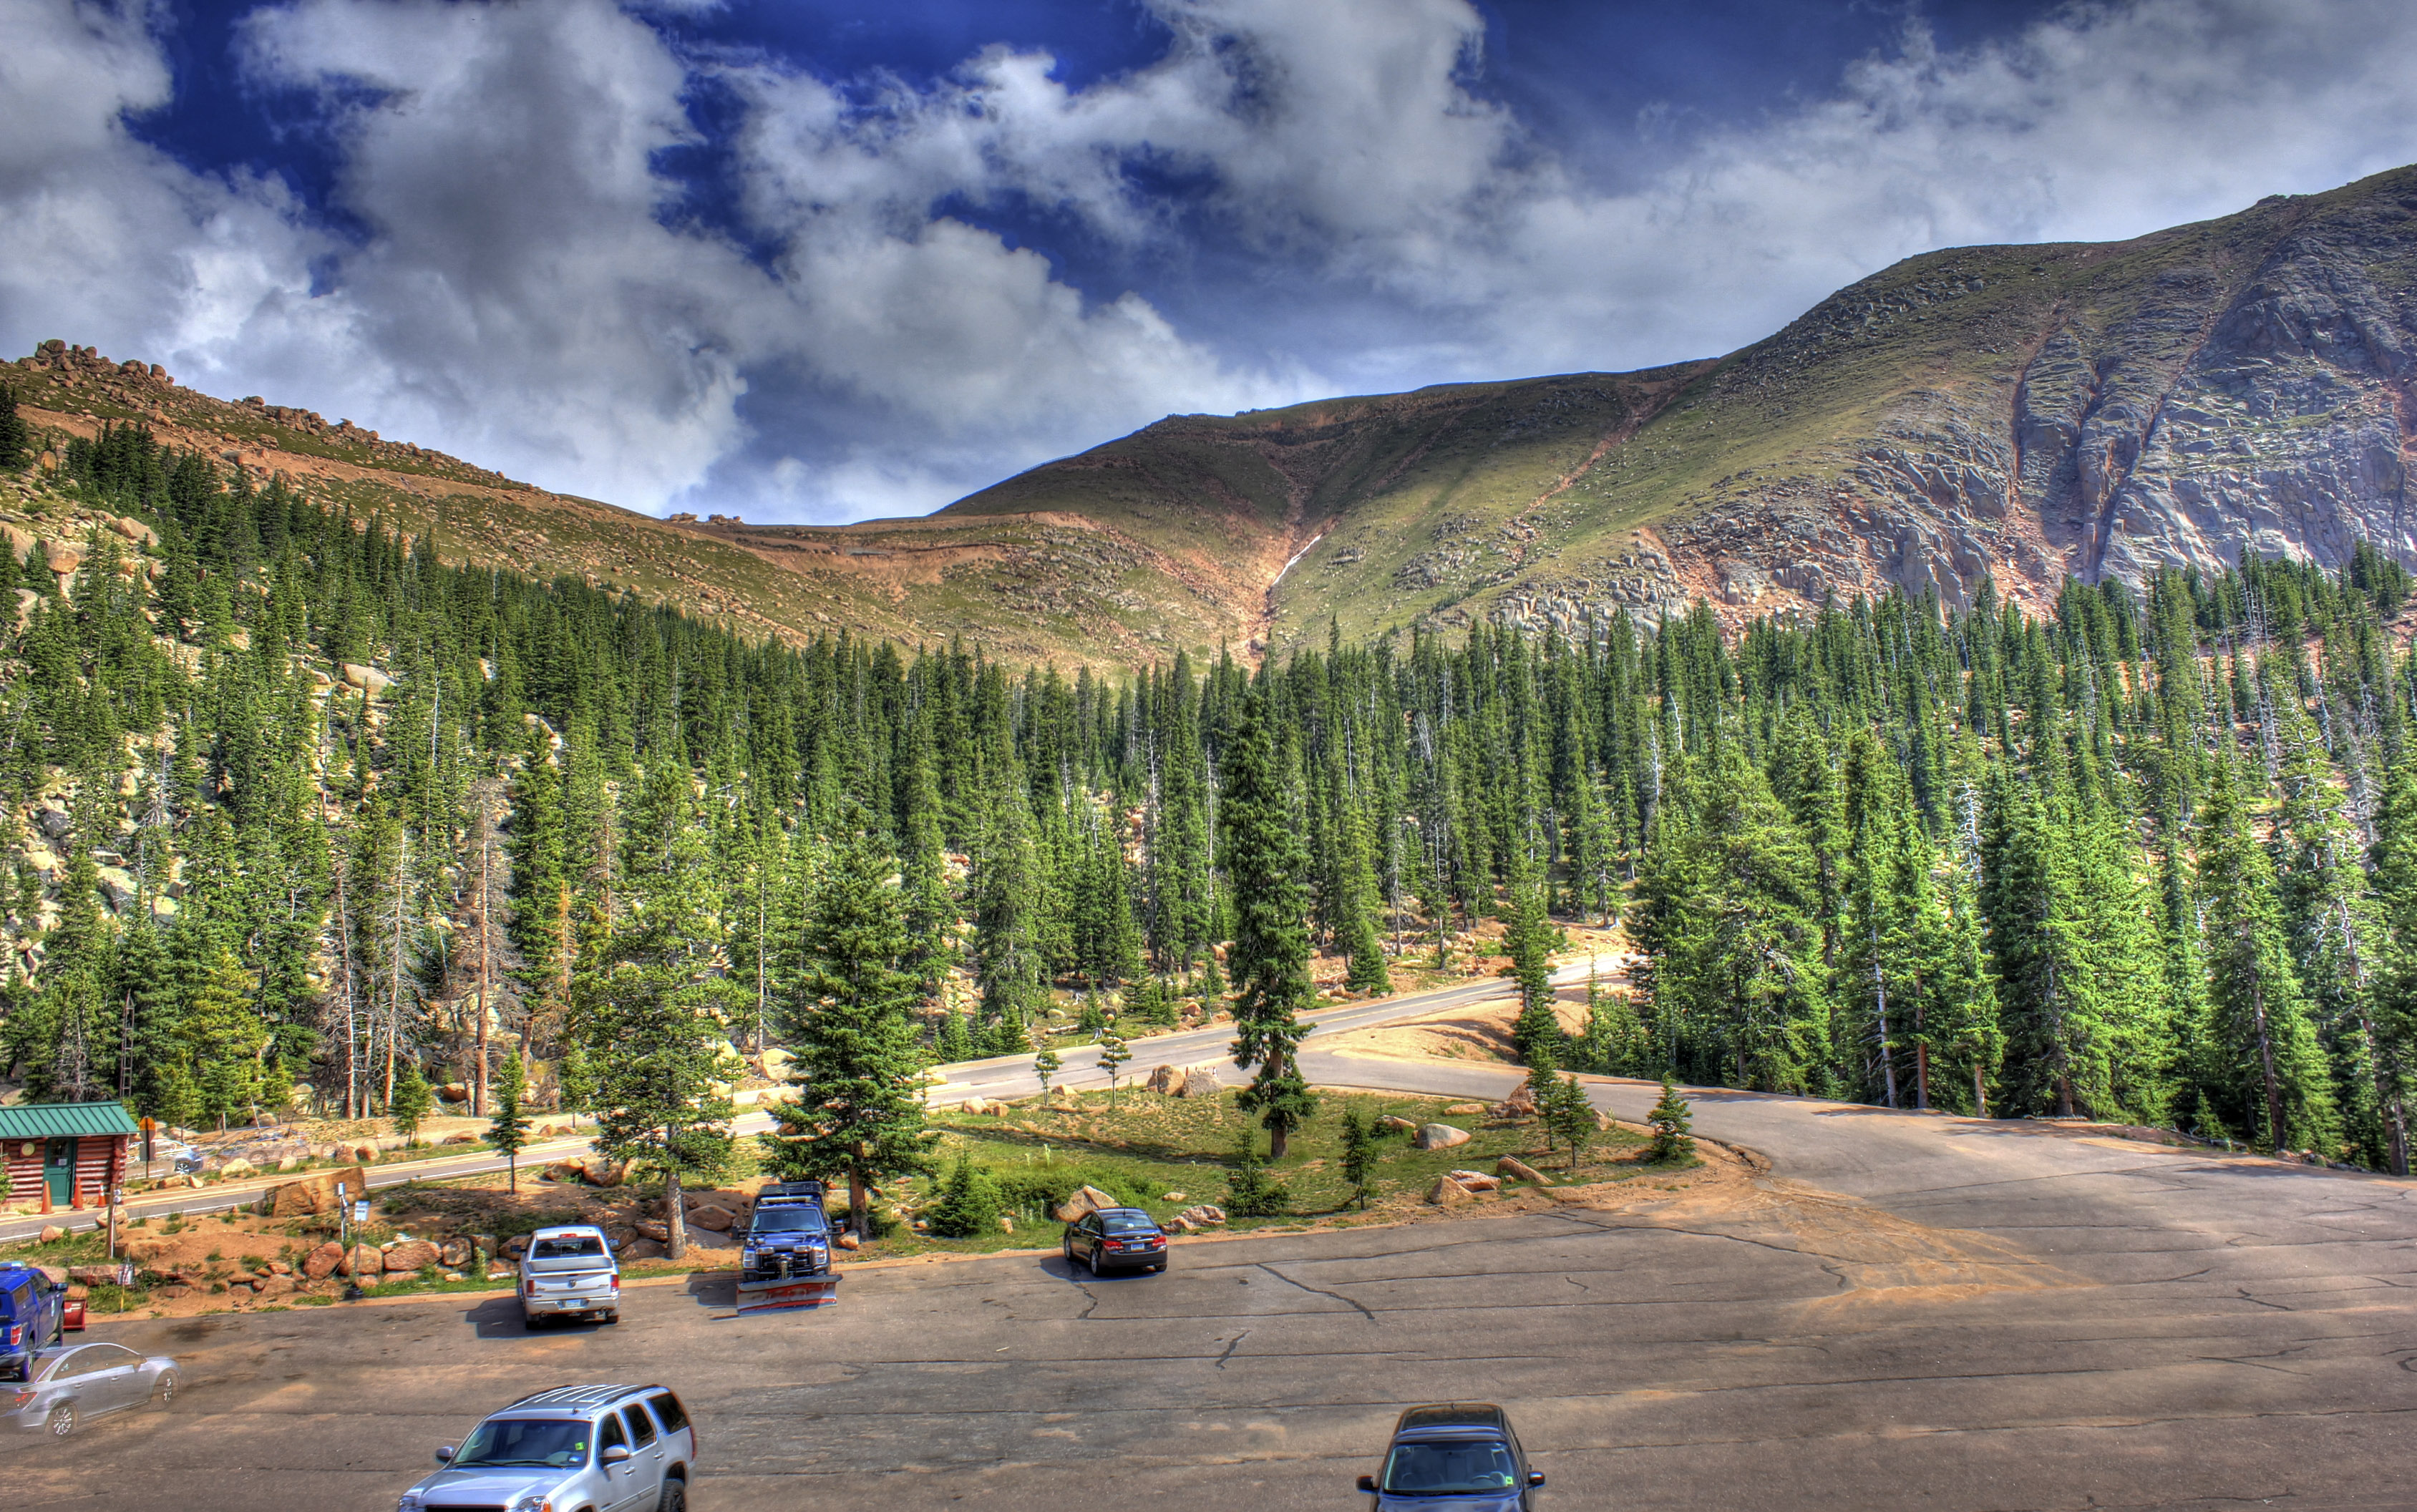 Pikes Peak Parking >> Parking Lot View At Pikes Peak Colorado Image Free Stock Photo